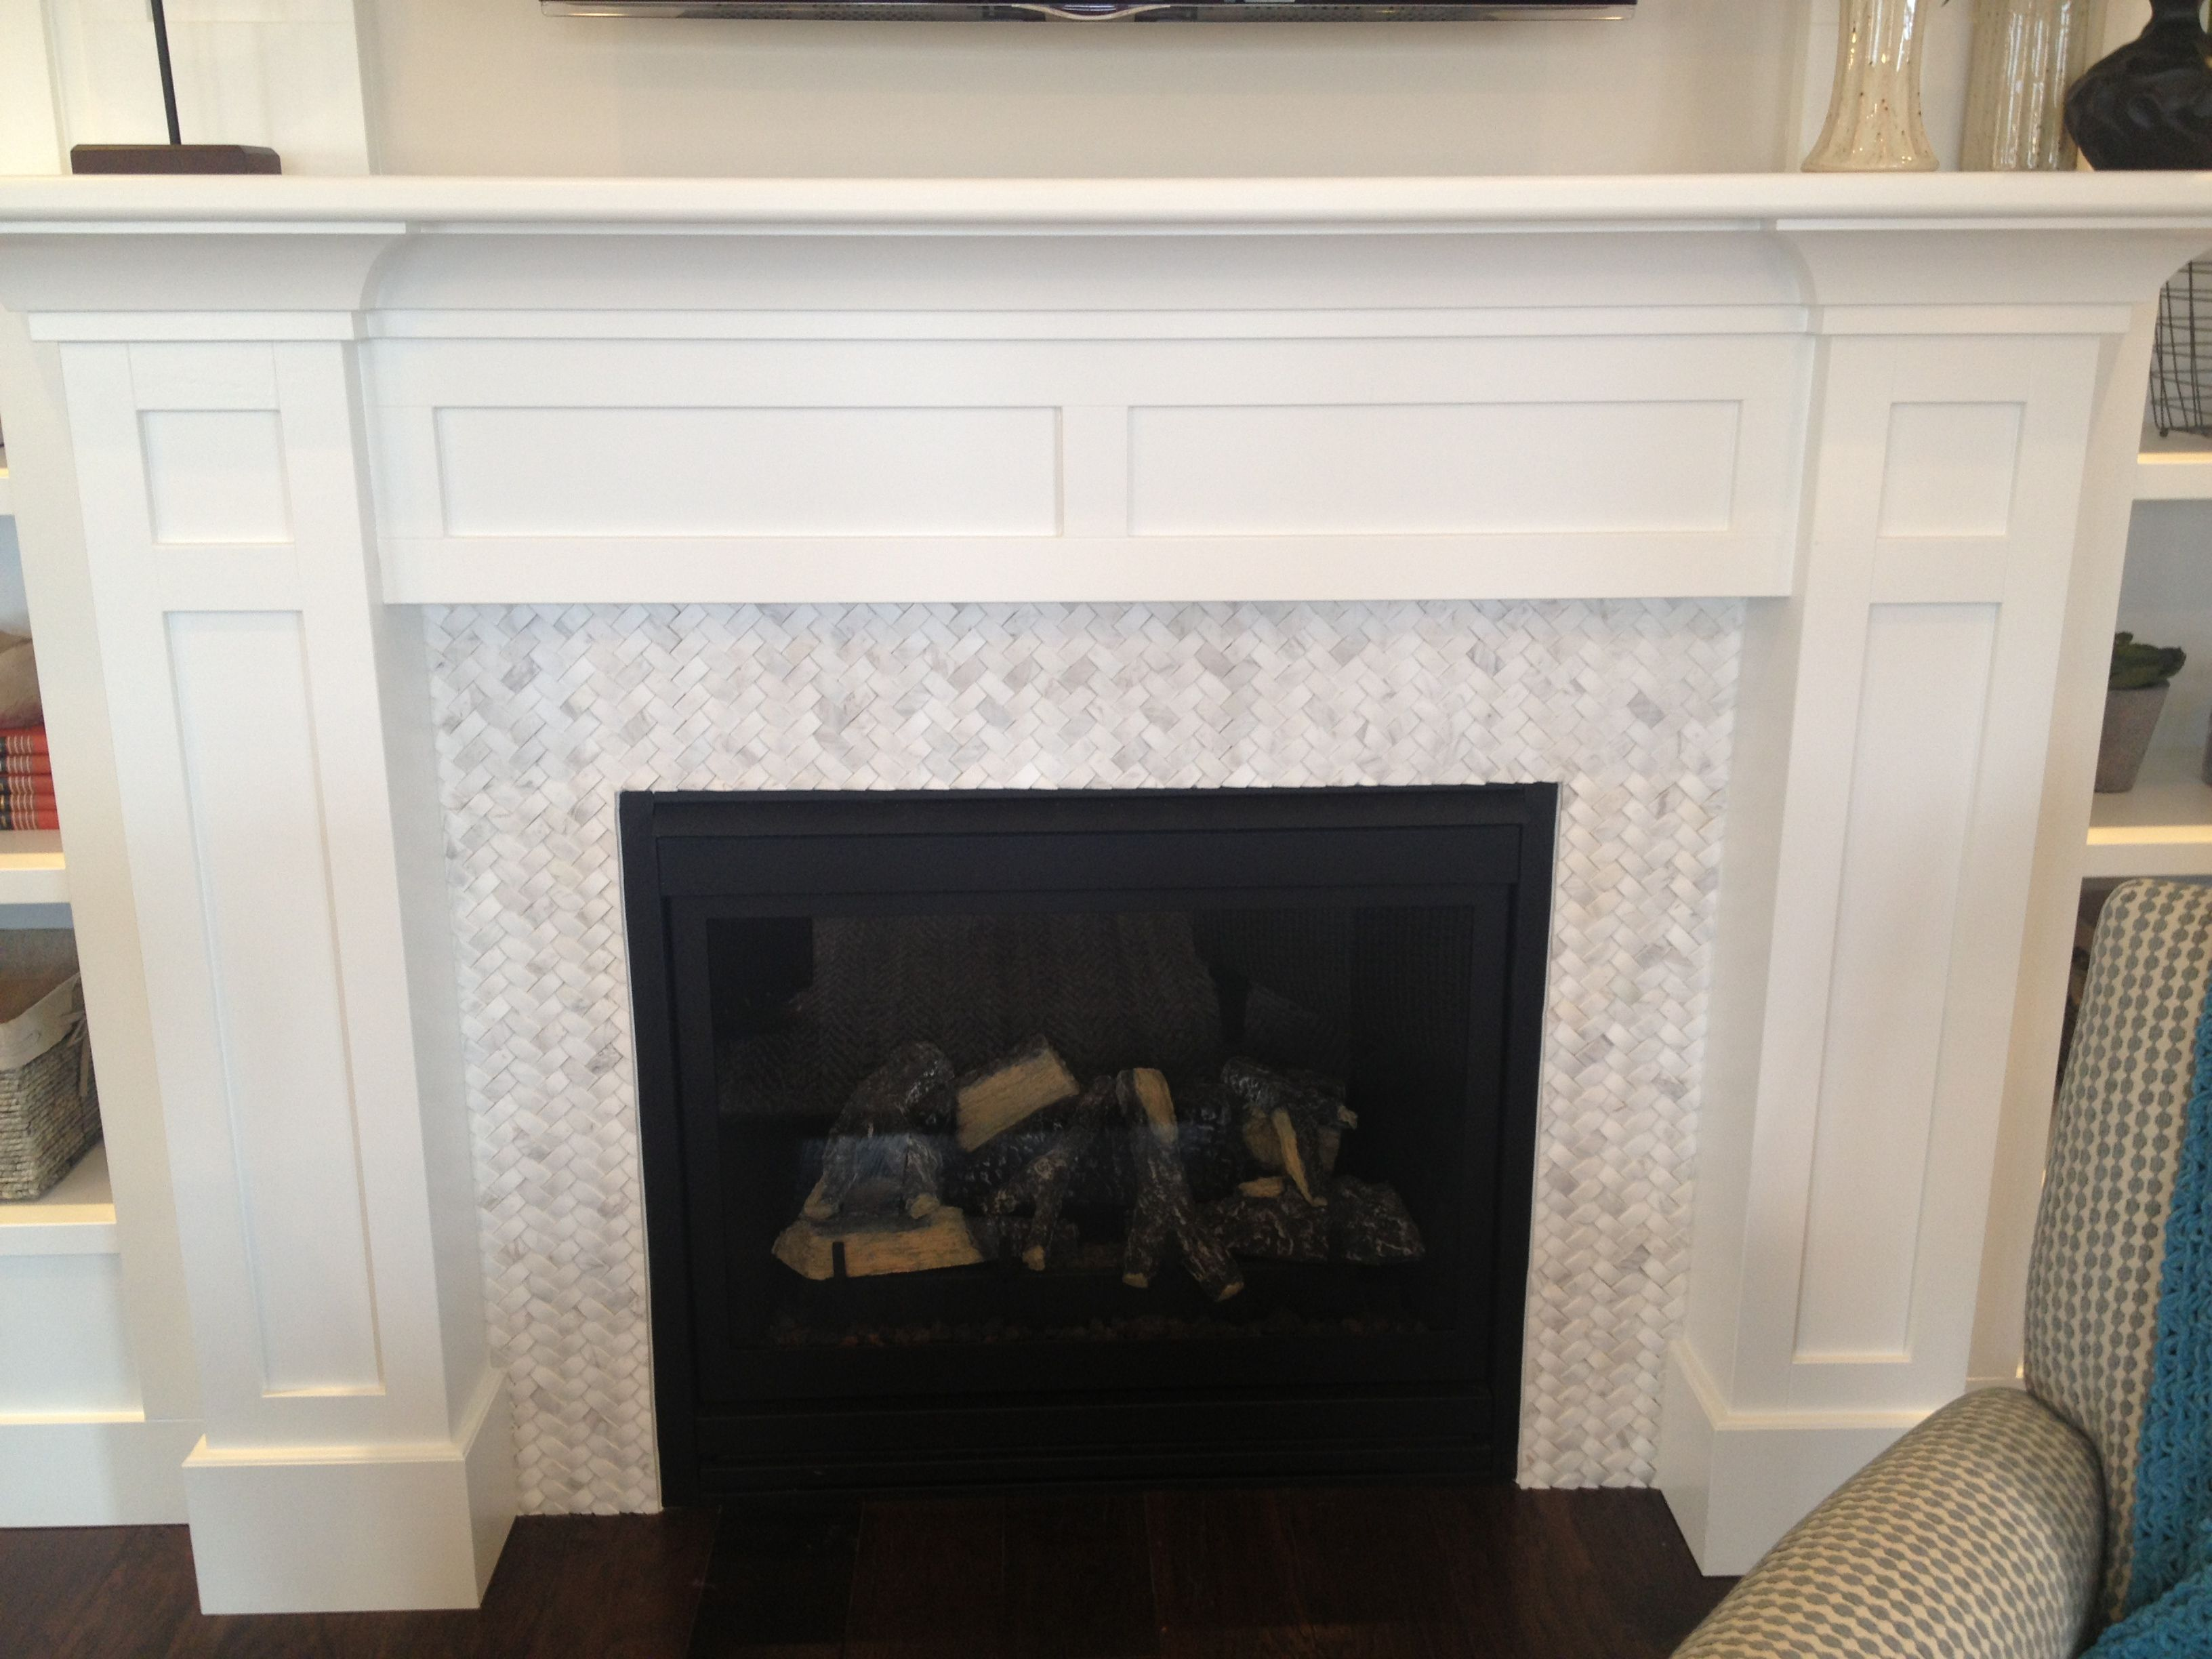 Fireplace Surround Design Ideas perfect fireplace surround designs Basket Weave Carrara Marble Fireplace Tile Surround With White Mission Style Mantel